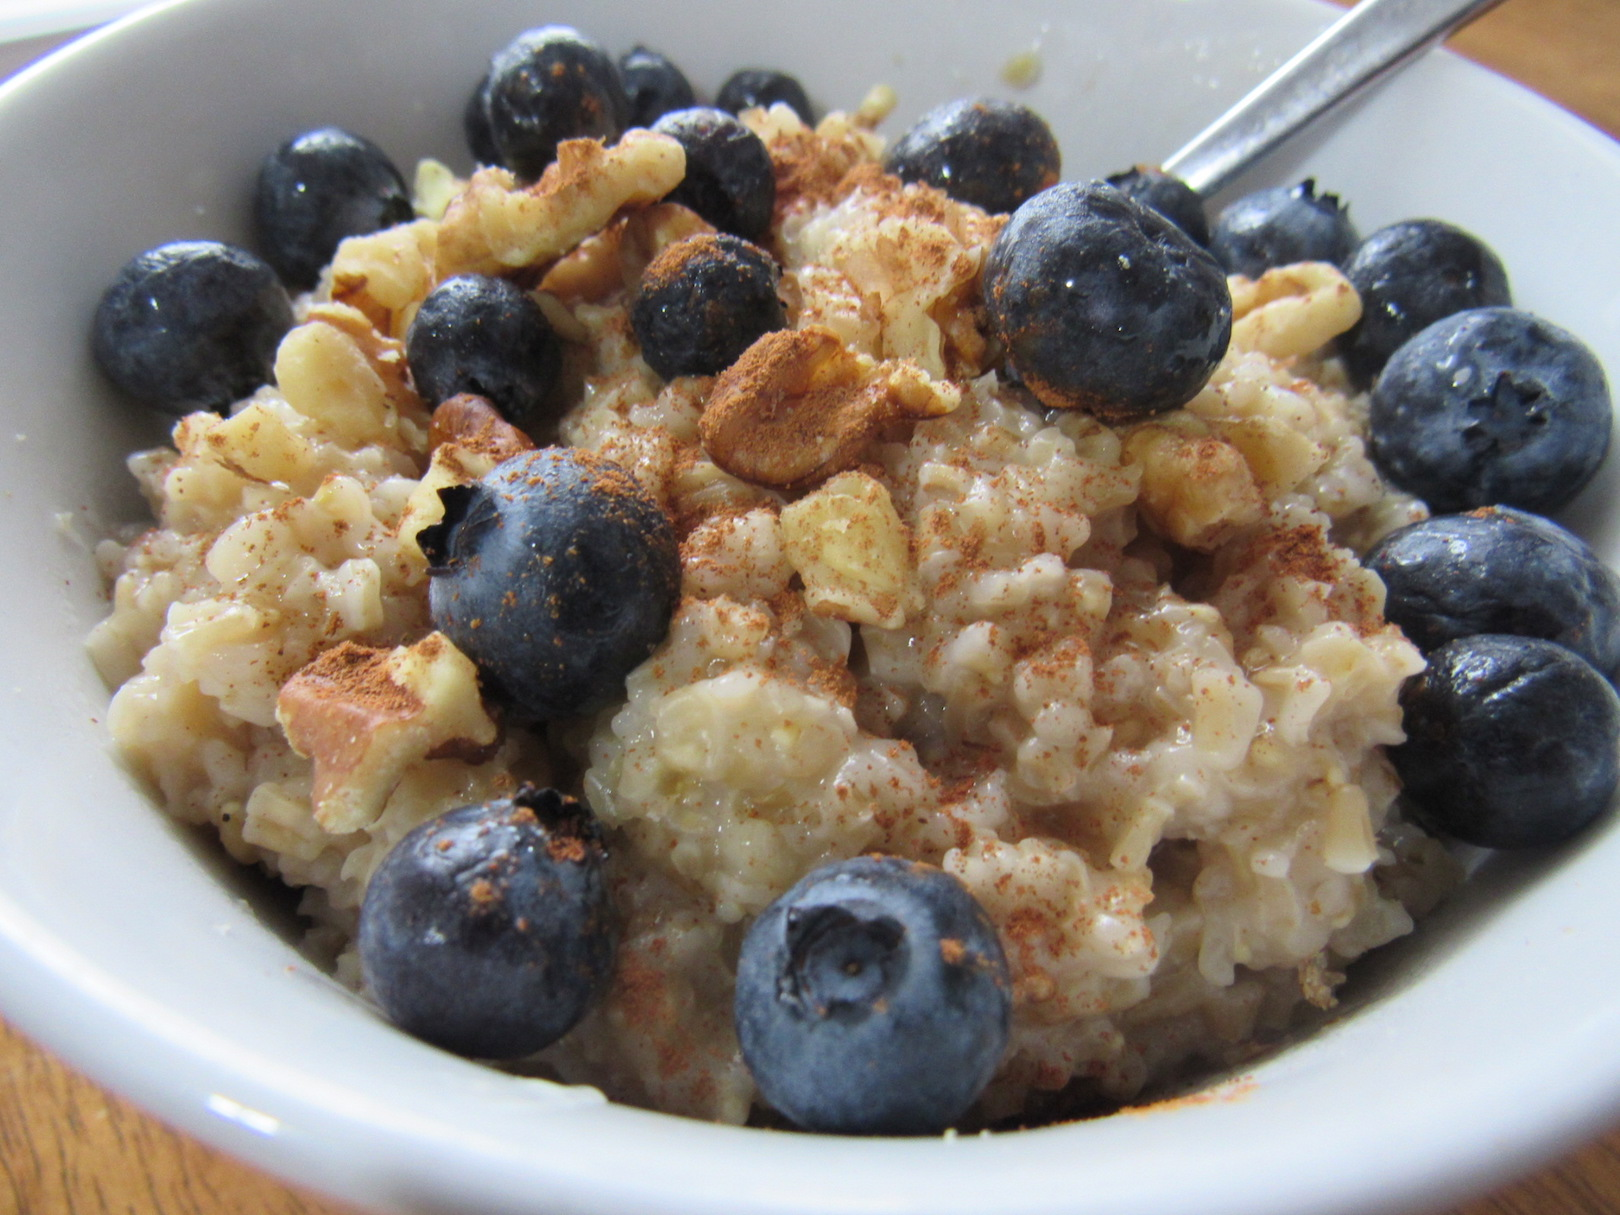 Balanced Bowl: Steel Cut Oats, Walnuts, and Blueberries